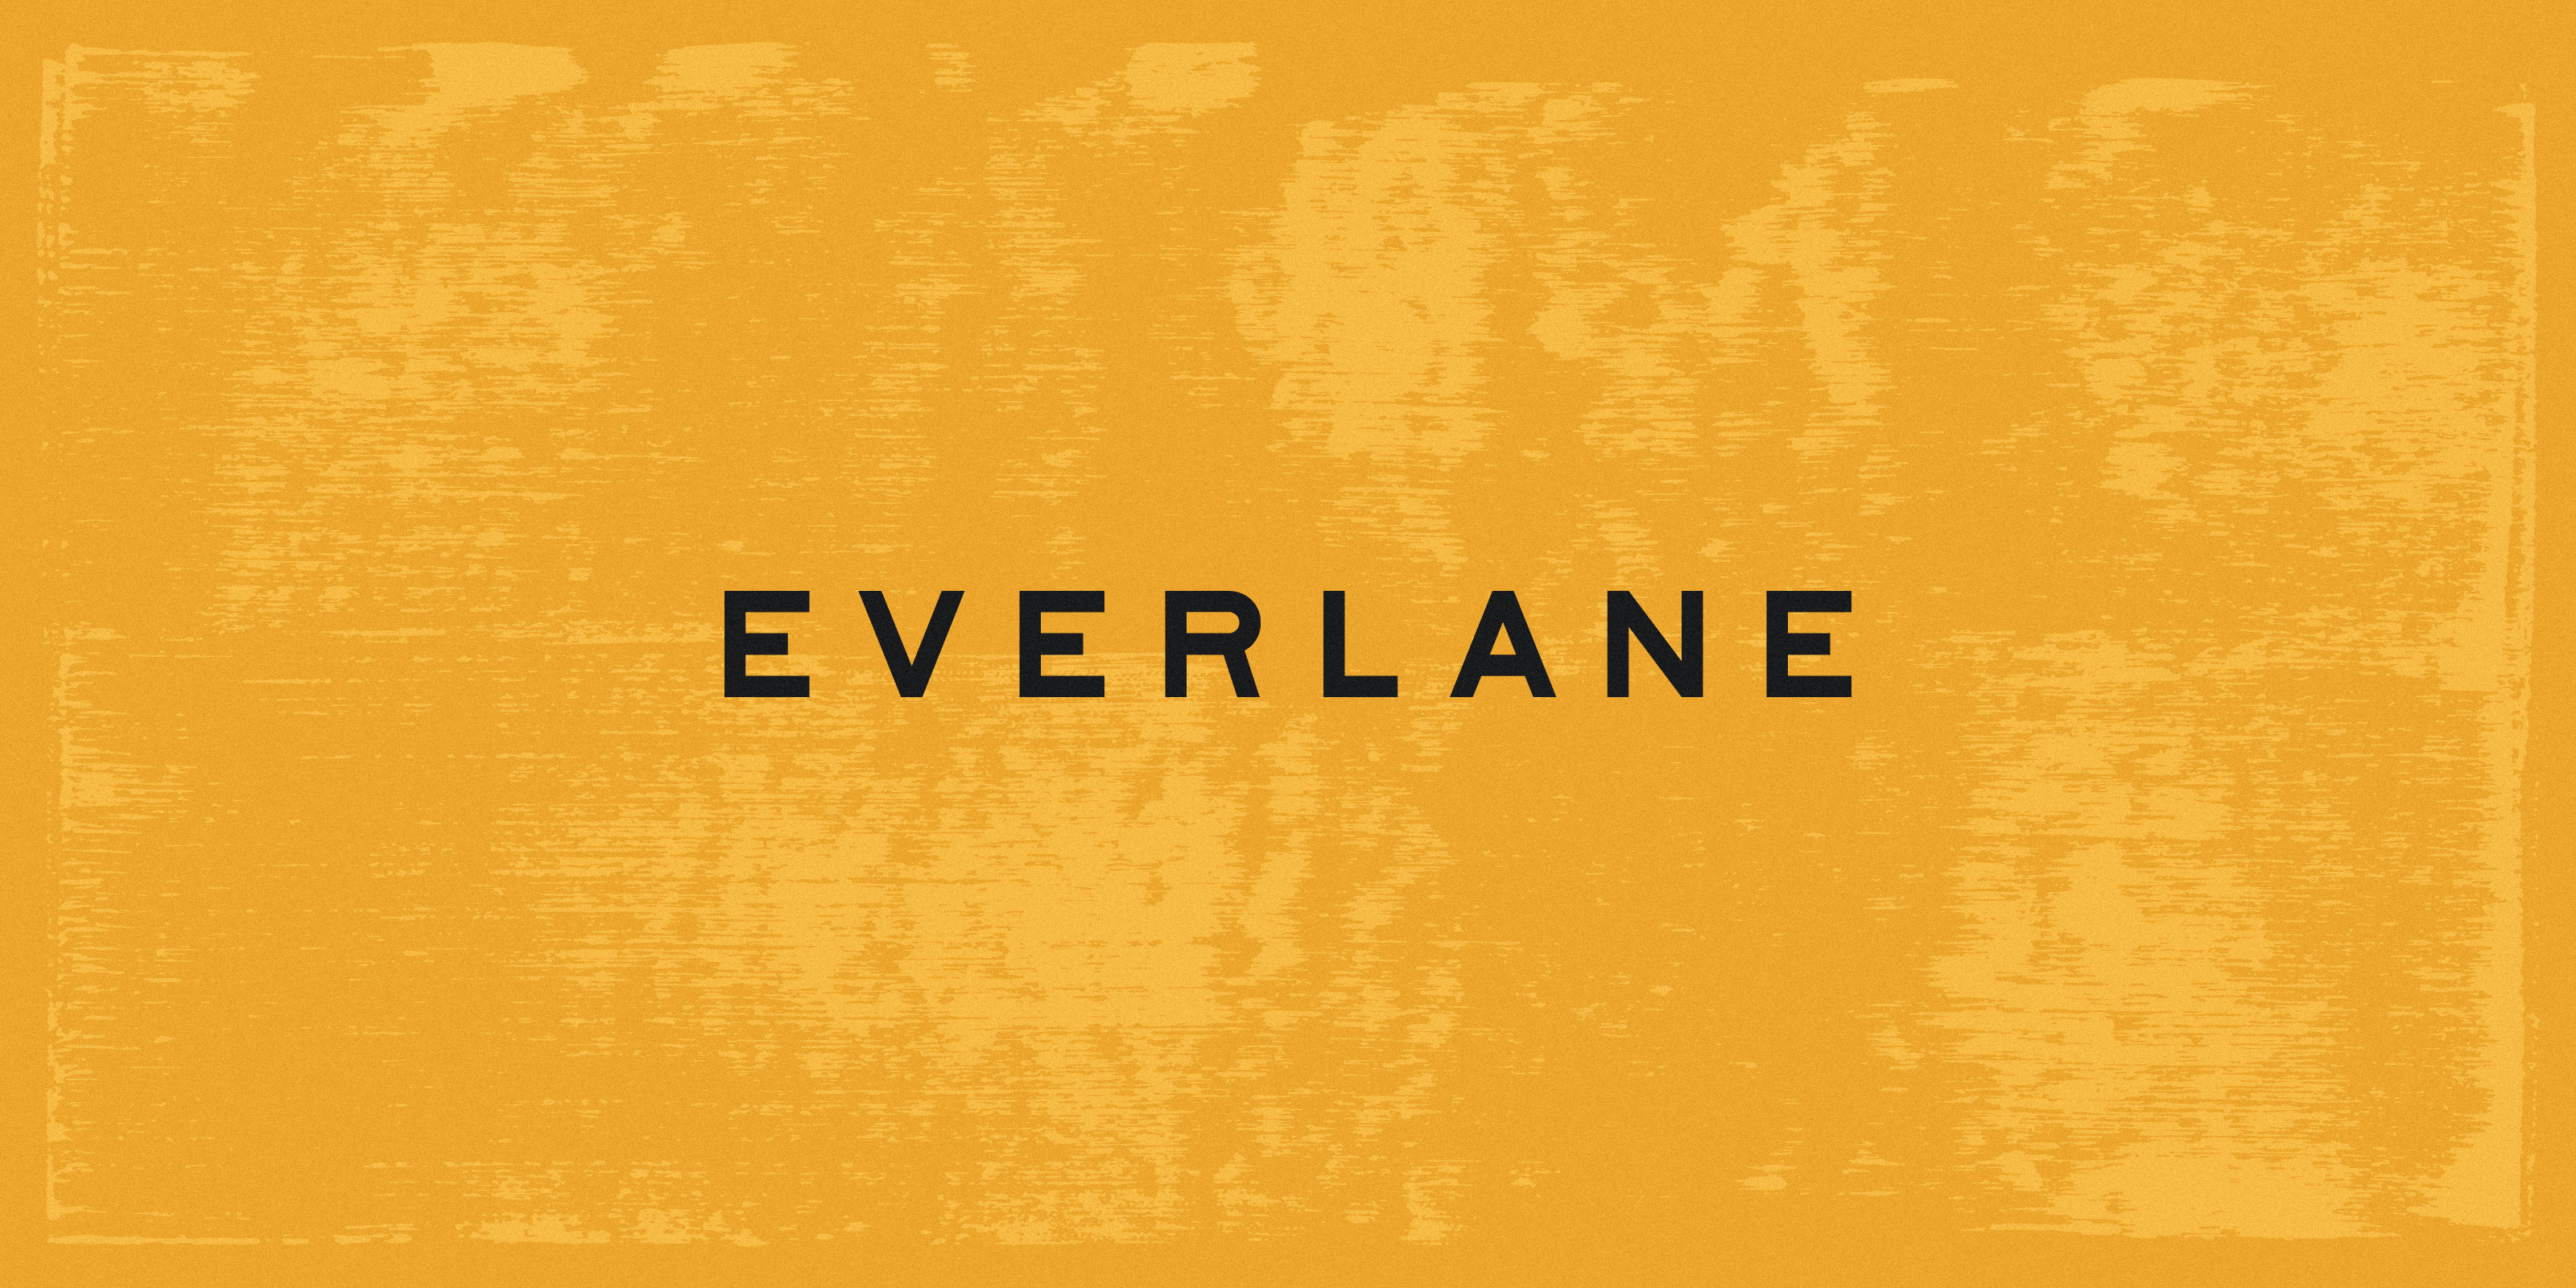 Democratizing the design process at Everlane